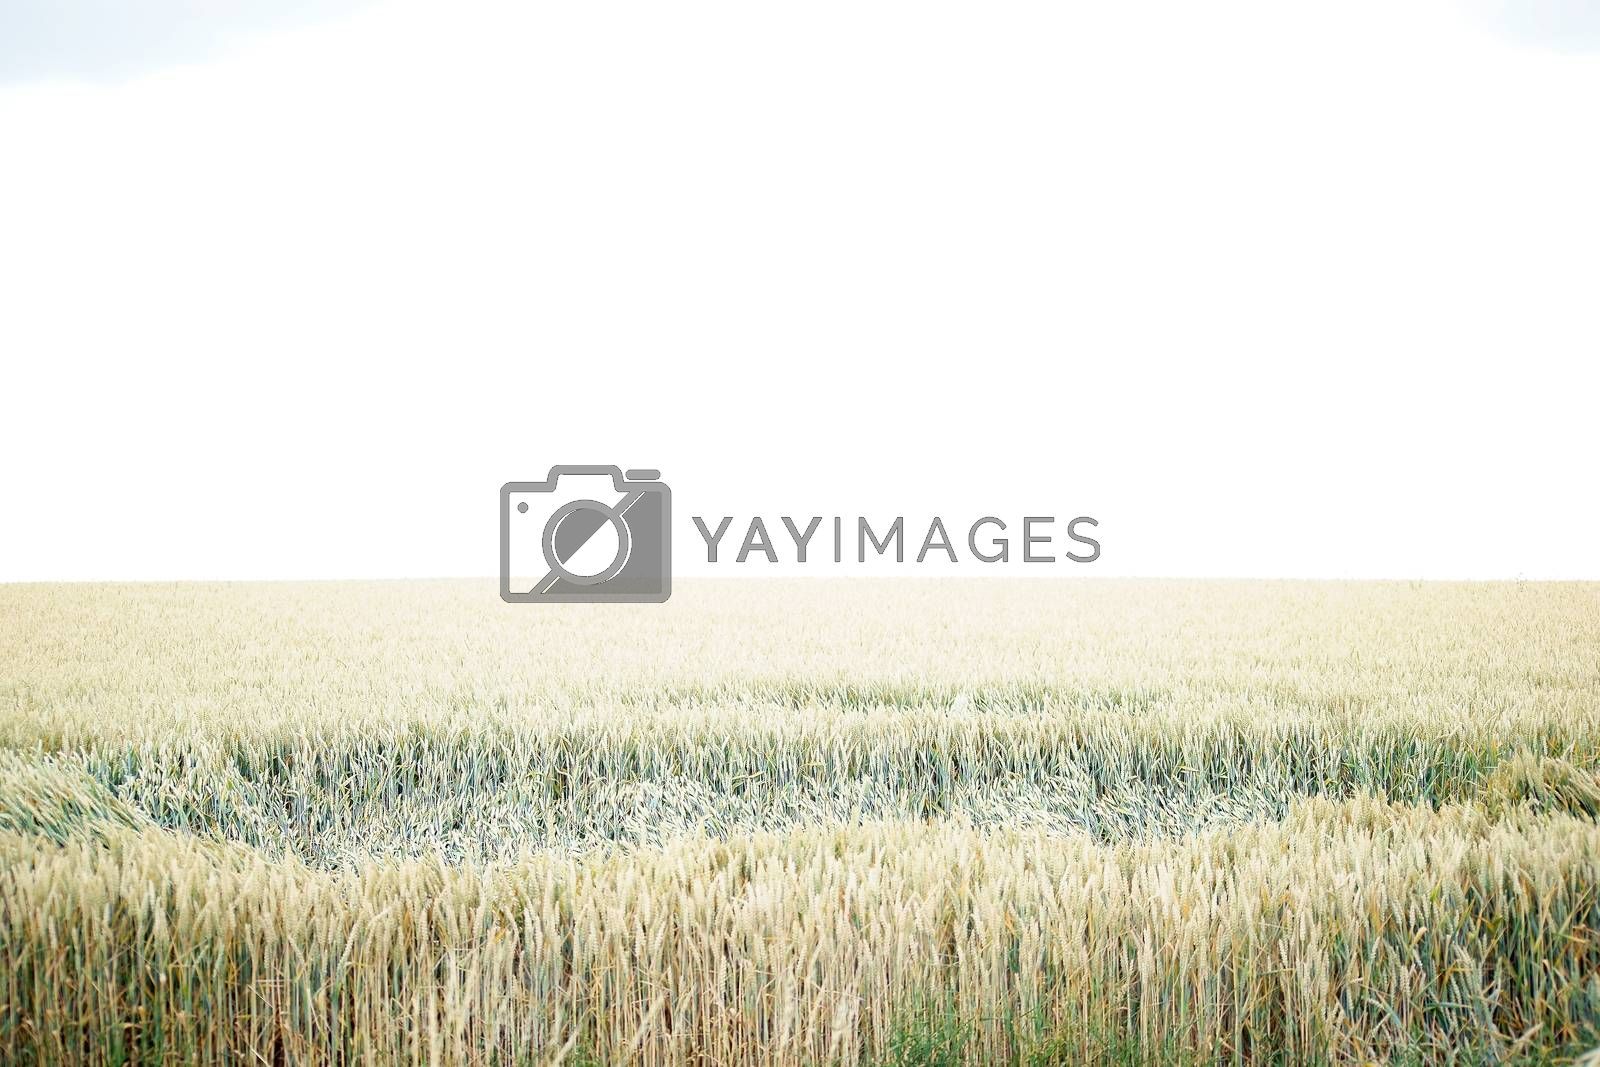 A fresh wheat field with an area of folded-over stalks.